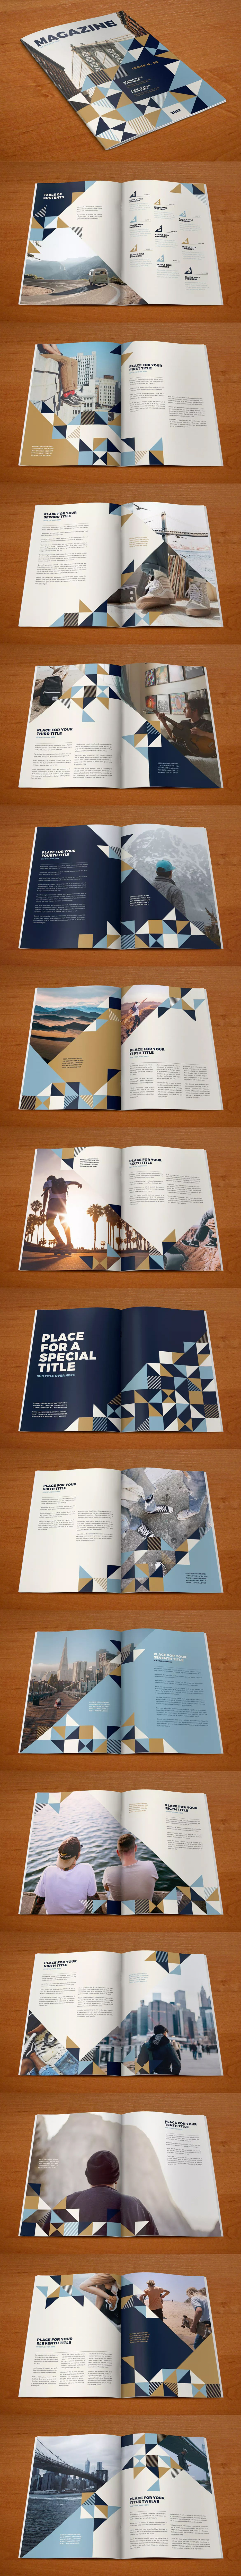 Cool Pattern Magazine Template InDesign INDD - 32 Custom Pages ...